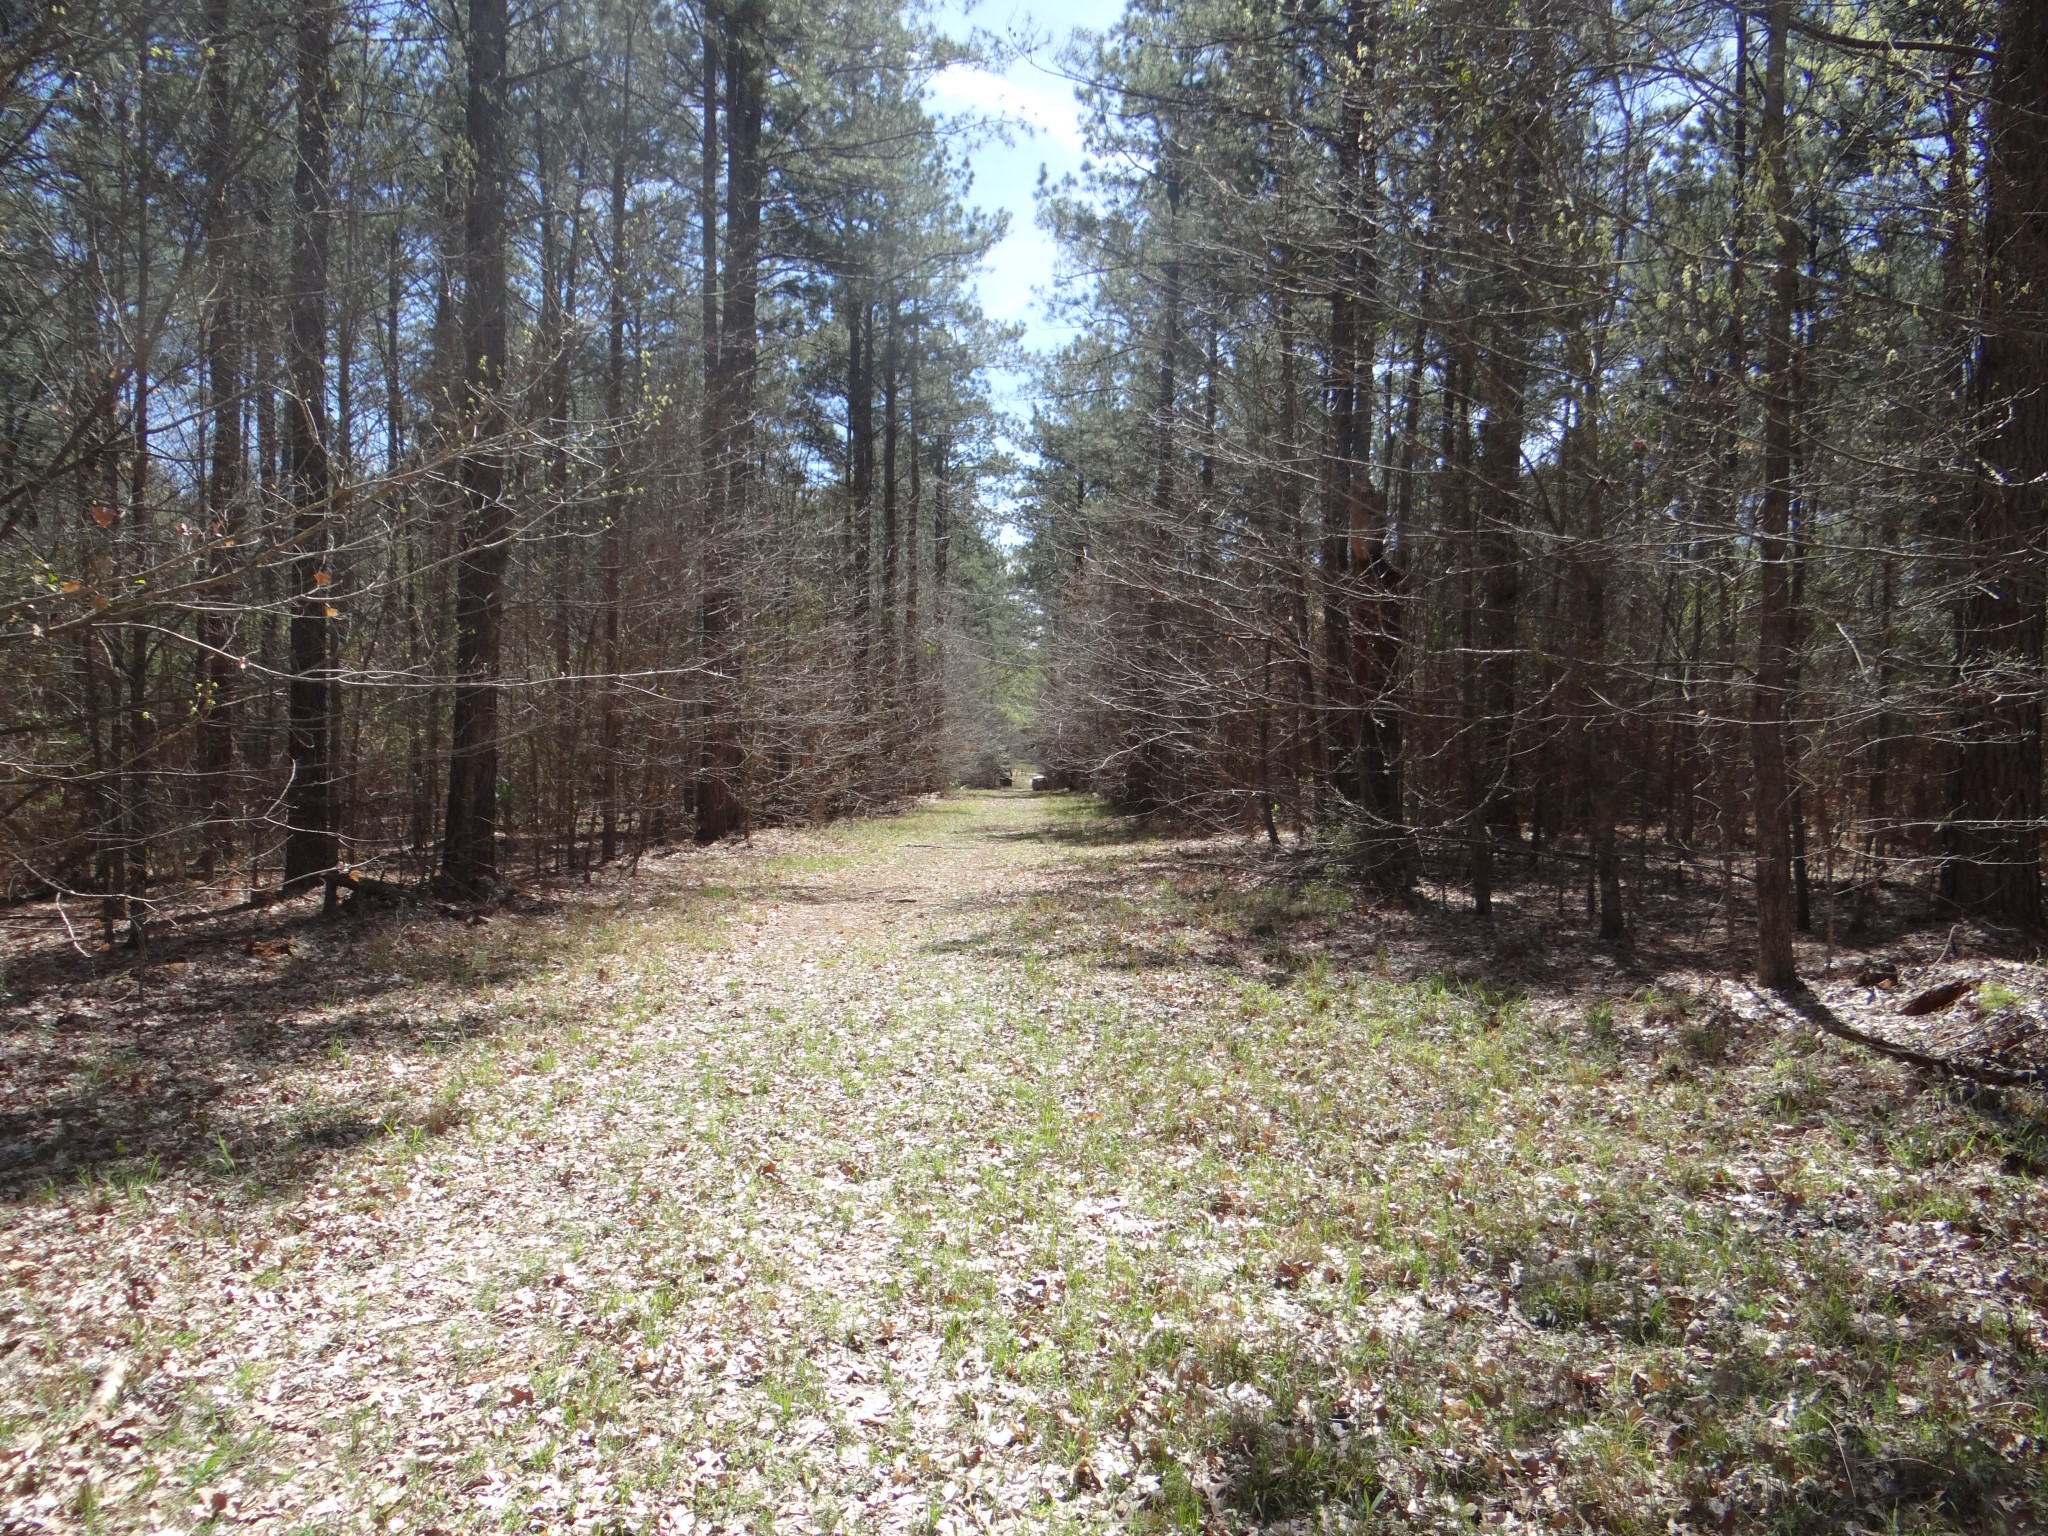 Couchwood Road Tract, Webster Parish, 156 acres +/-